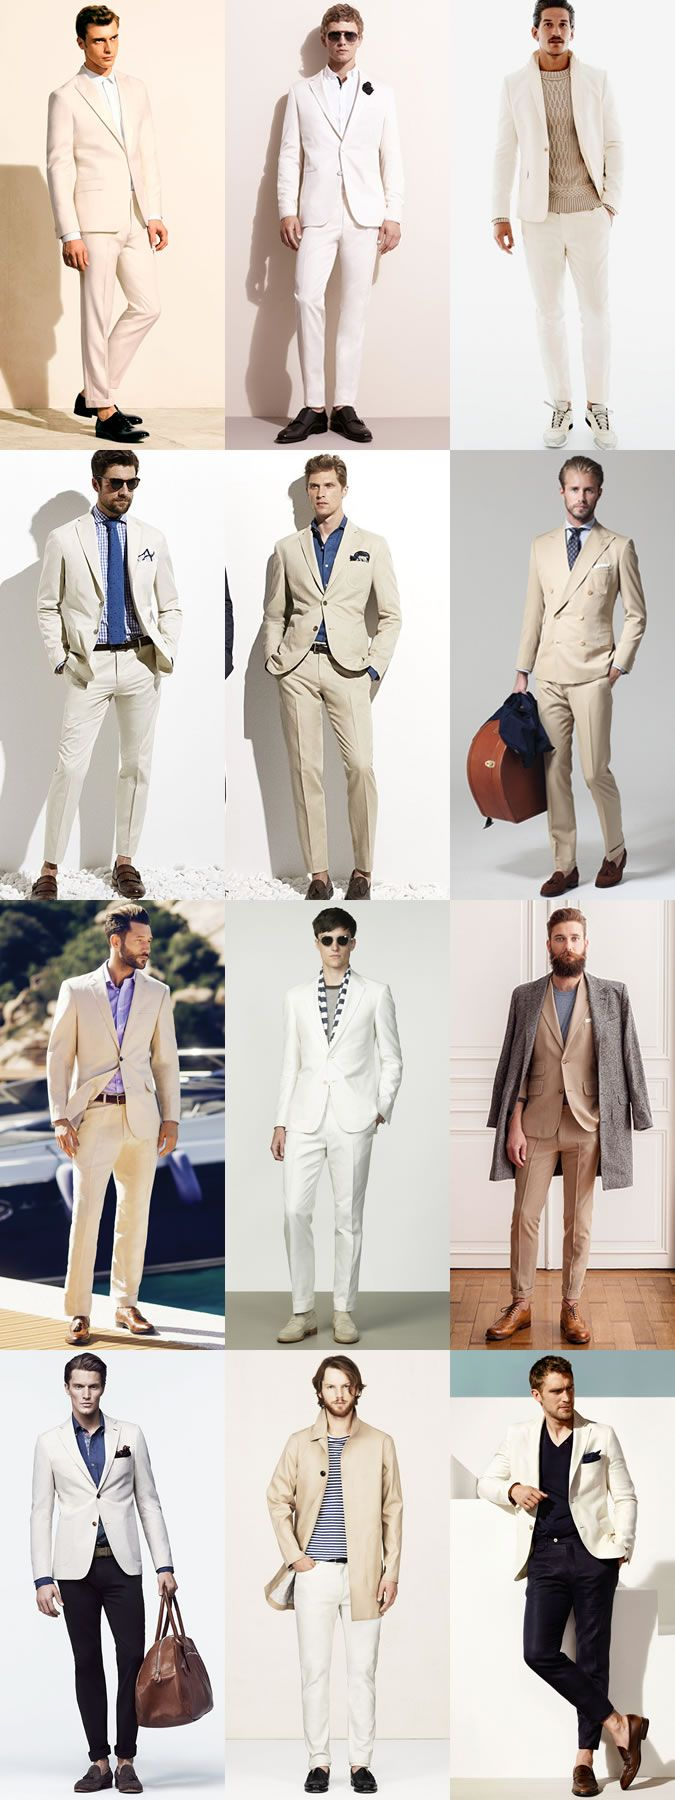 5 Key Men's Suit Styles For 2014 Spring/Summer: The Summer Neutral - Full Suit  Separates Lookbook Inspiration